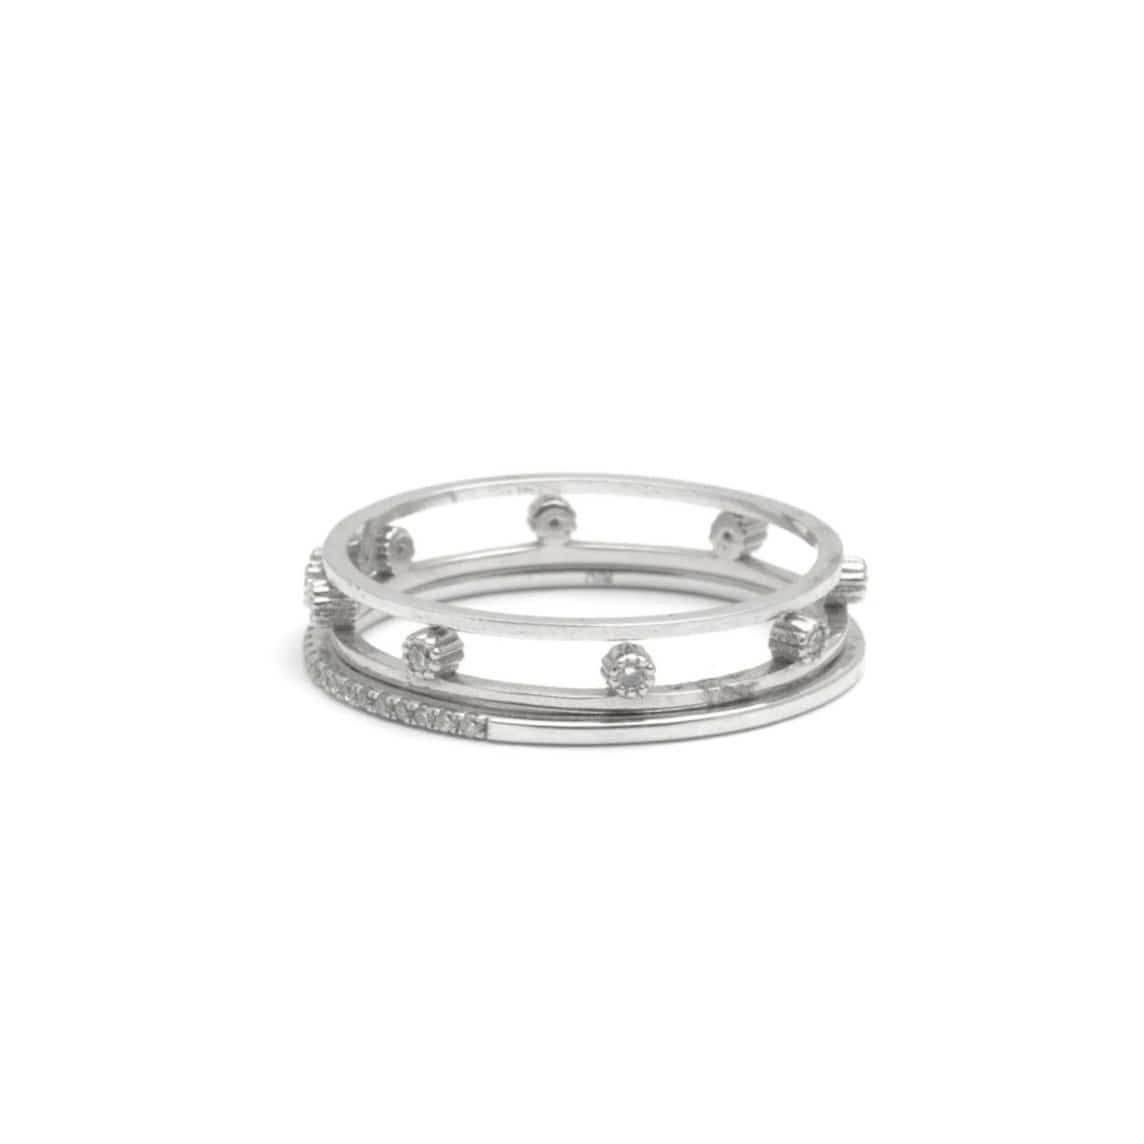 8 Diamond Bezel Set White Gold Ring